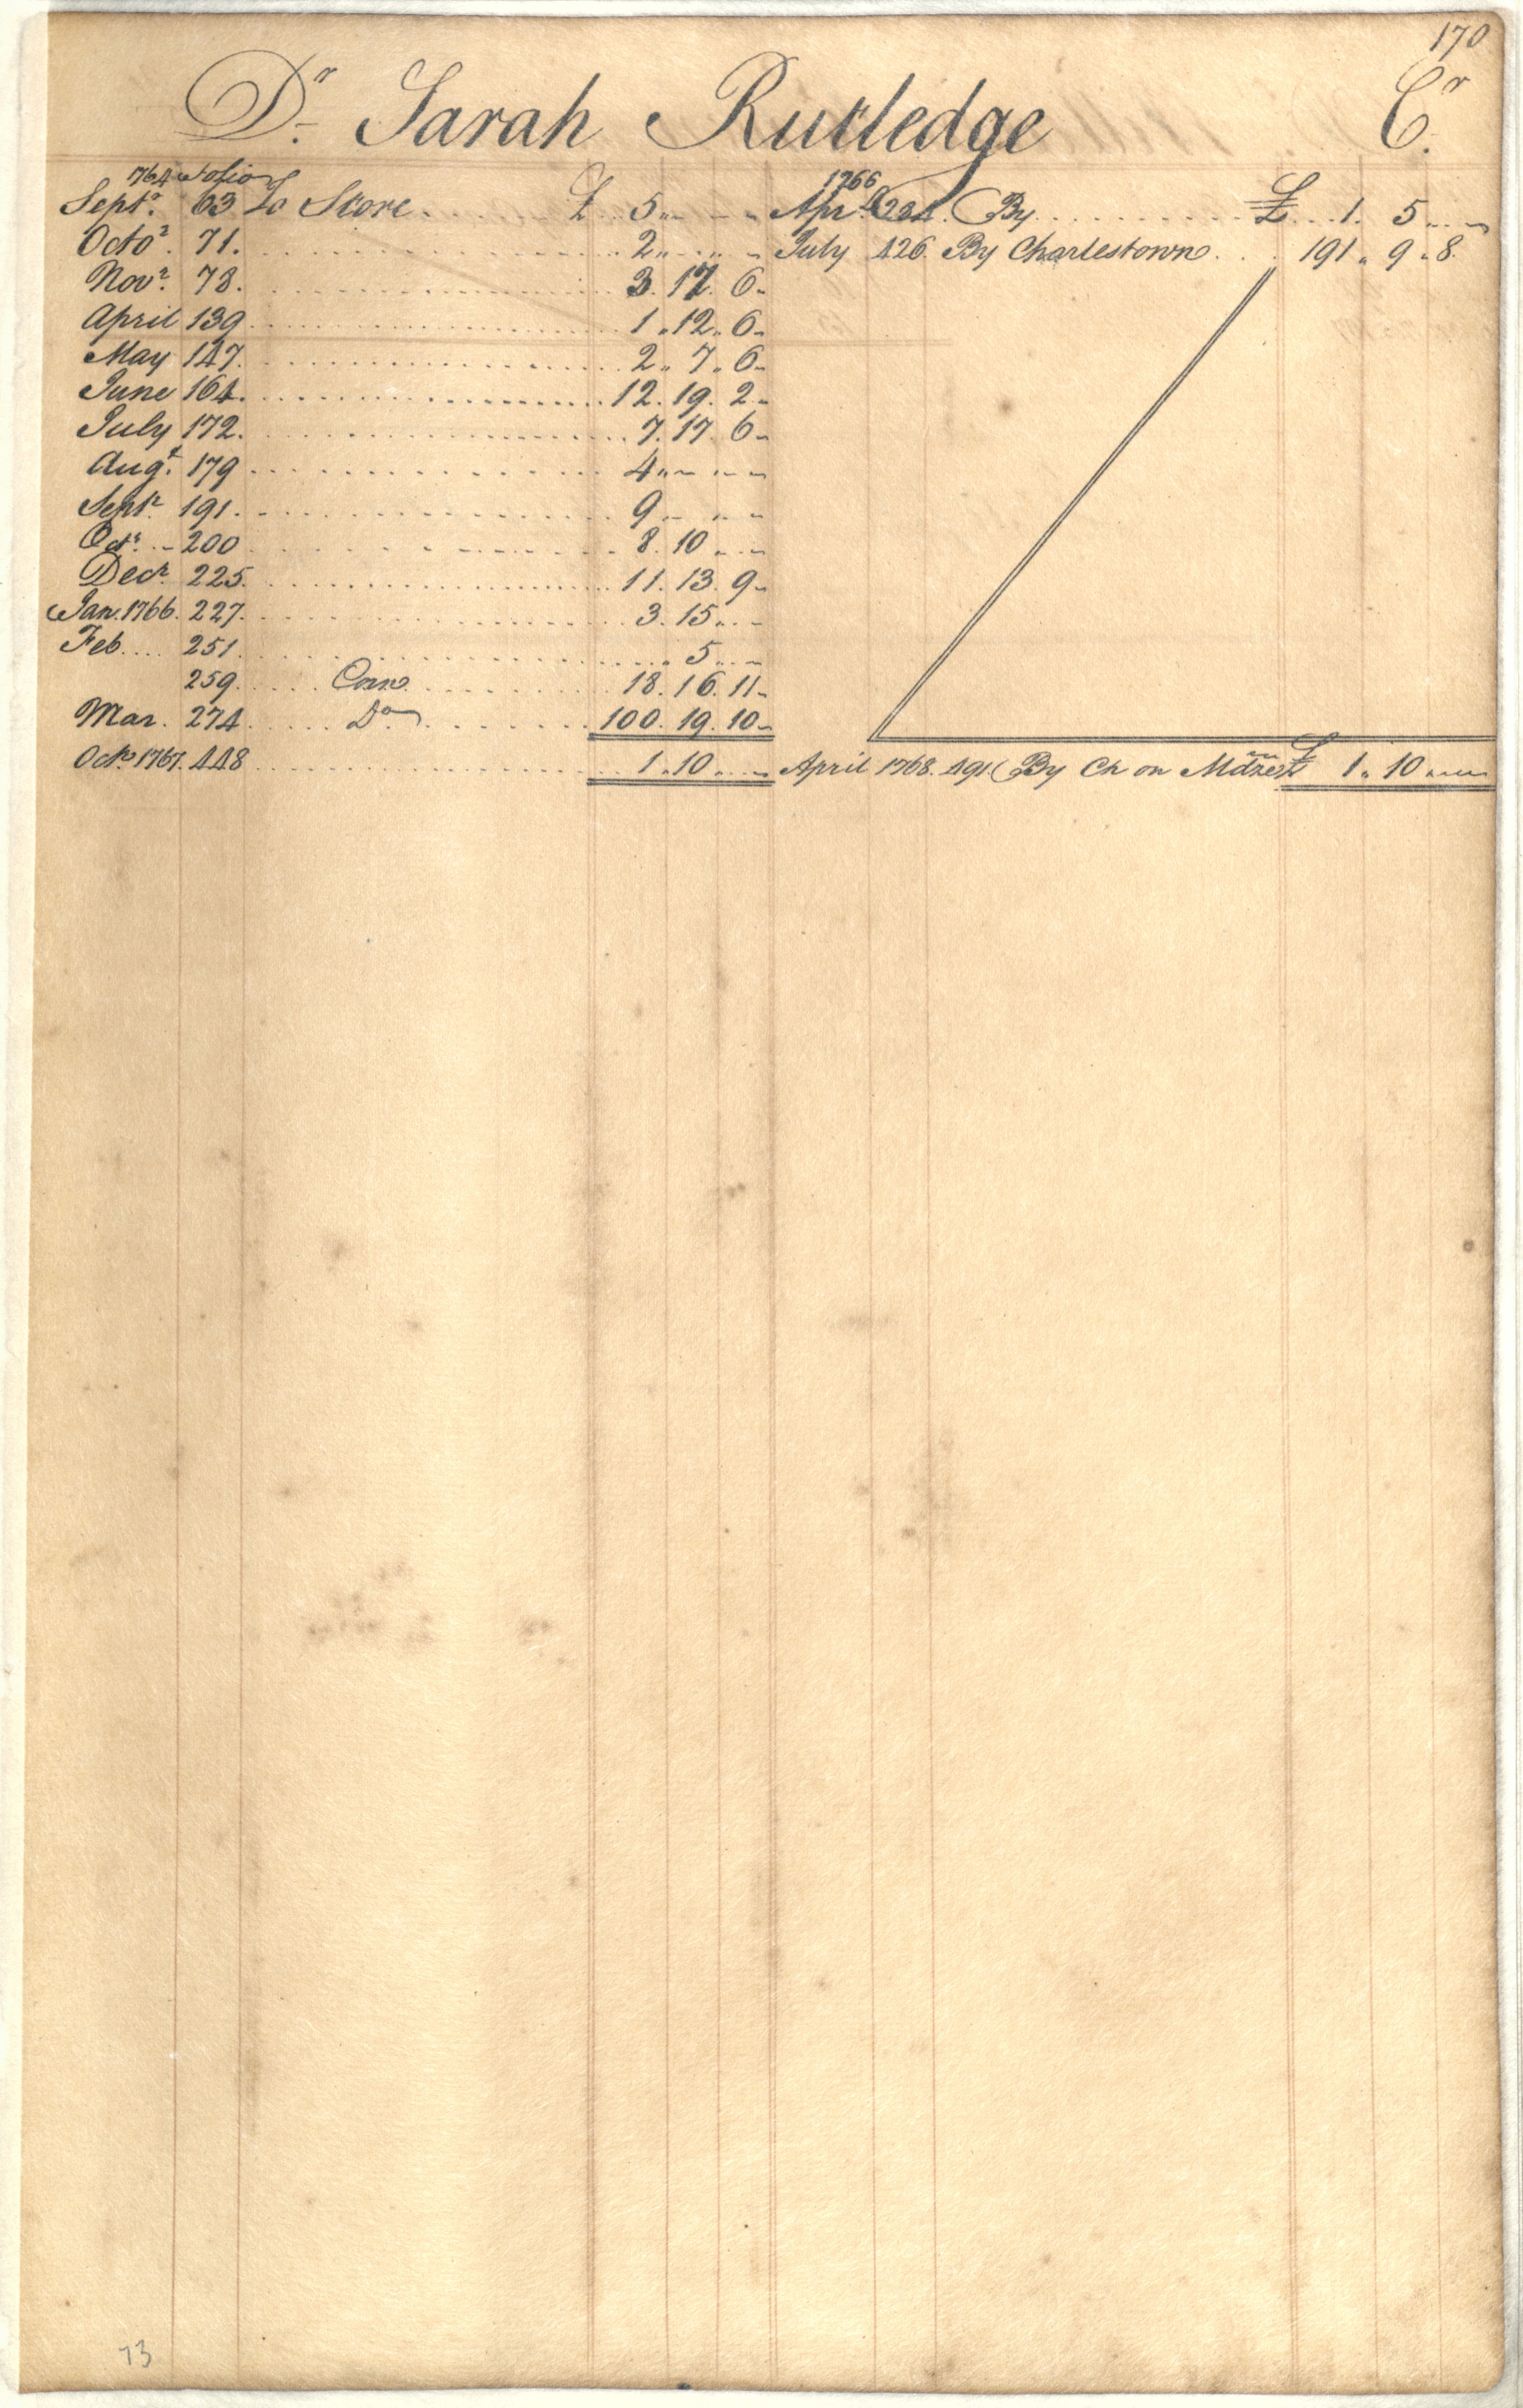 Plowden Weston's Business Ledger, page 170